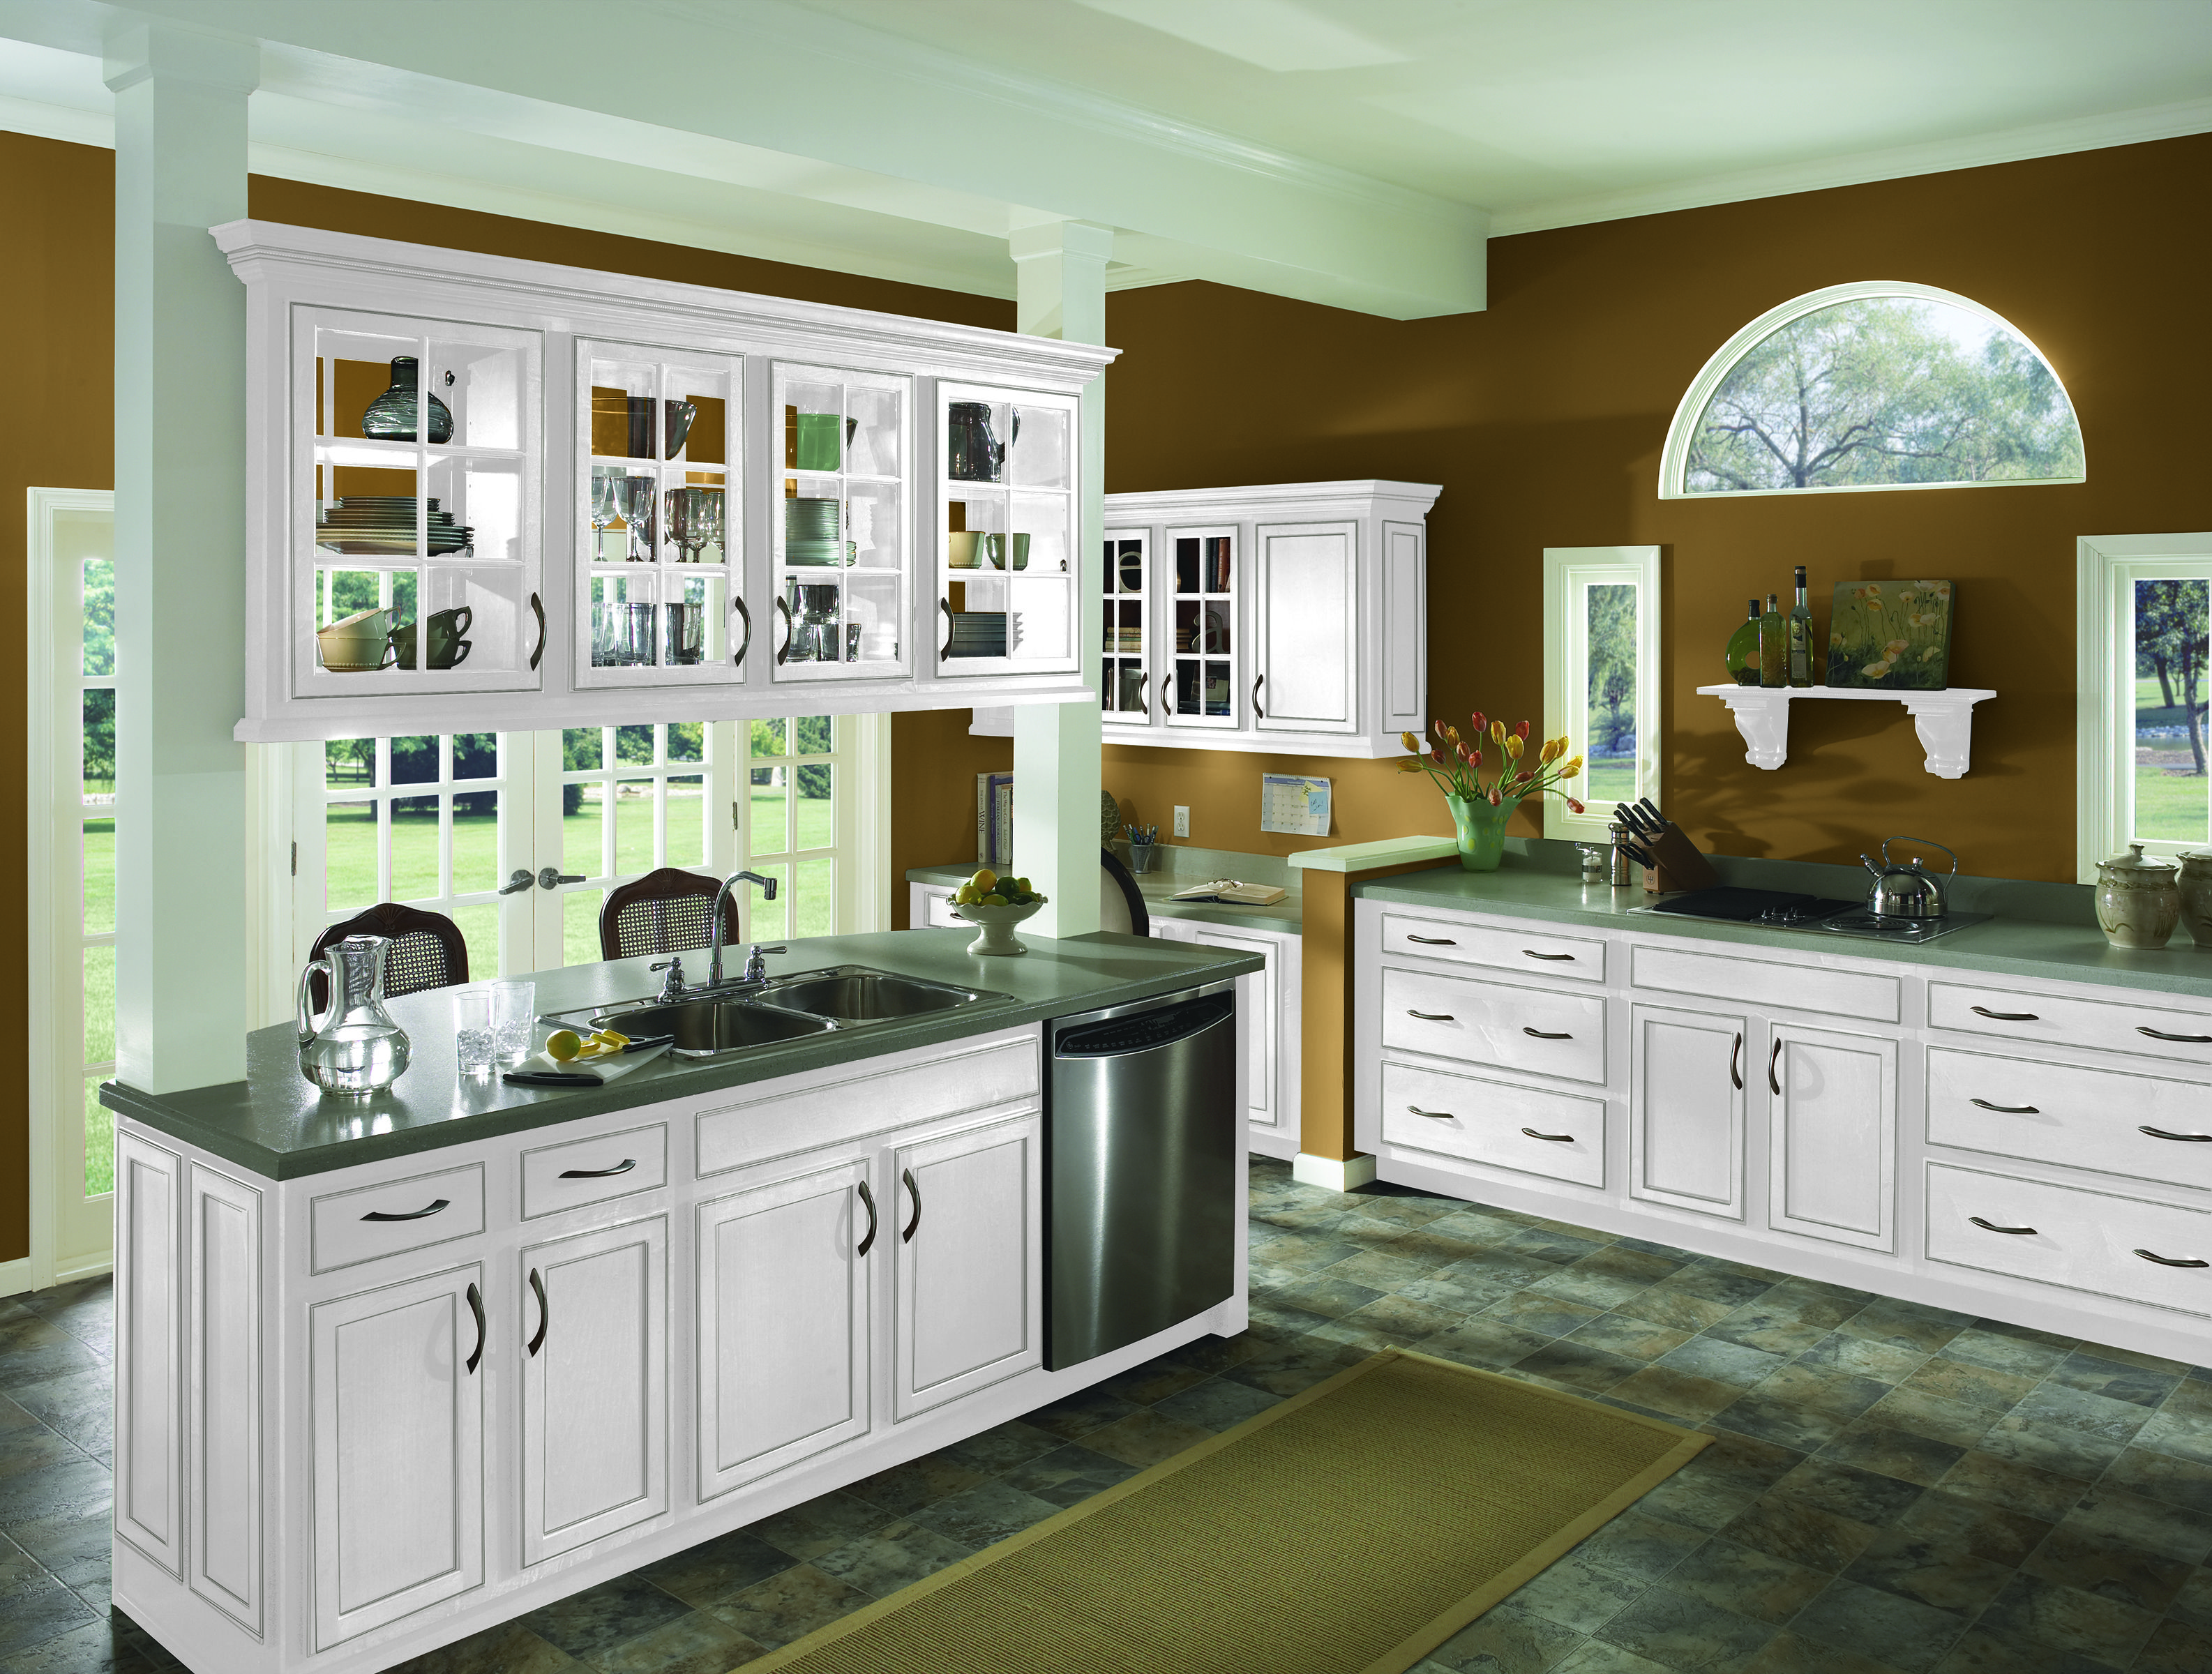 Acpi Advanta Cabinets Kcma Certified And Kcma Responsible And Sustainable Cabinets Kitchen Cabinets Models Flat Panel Cabinets Kitchen Cabinet Manufacturers